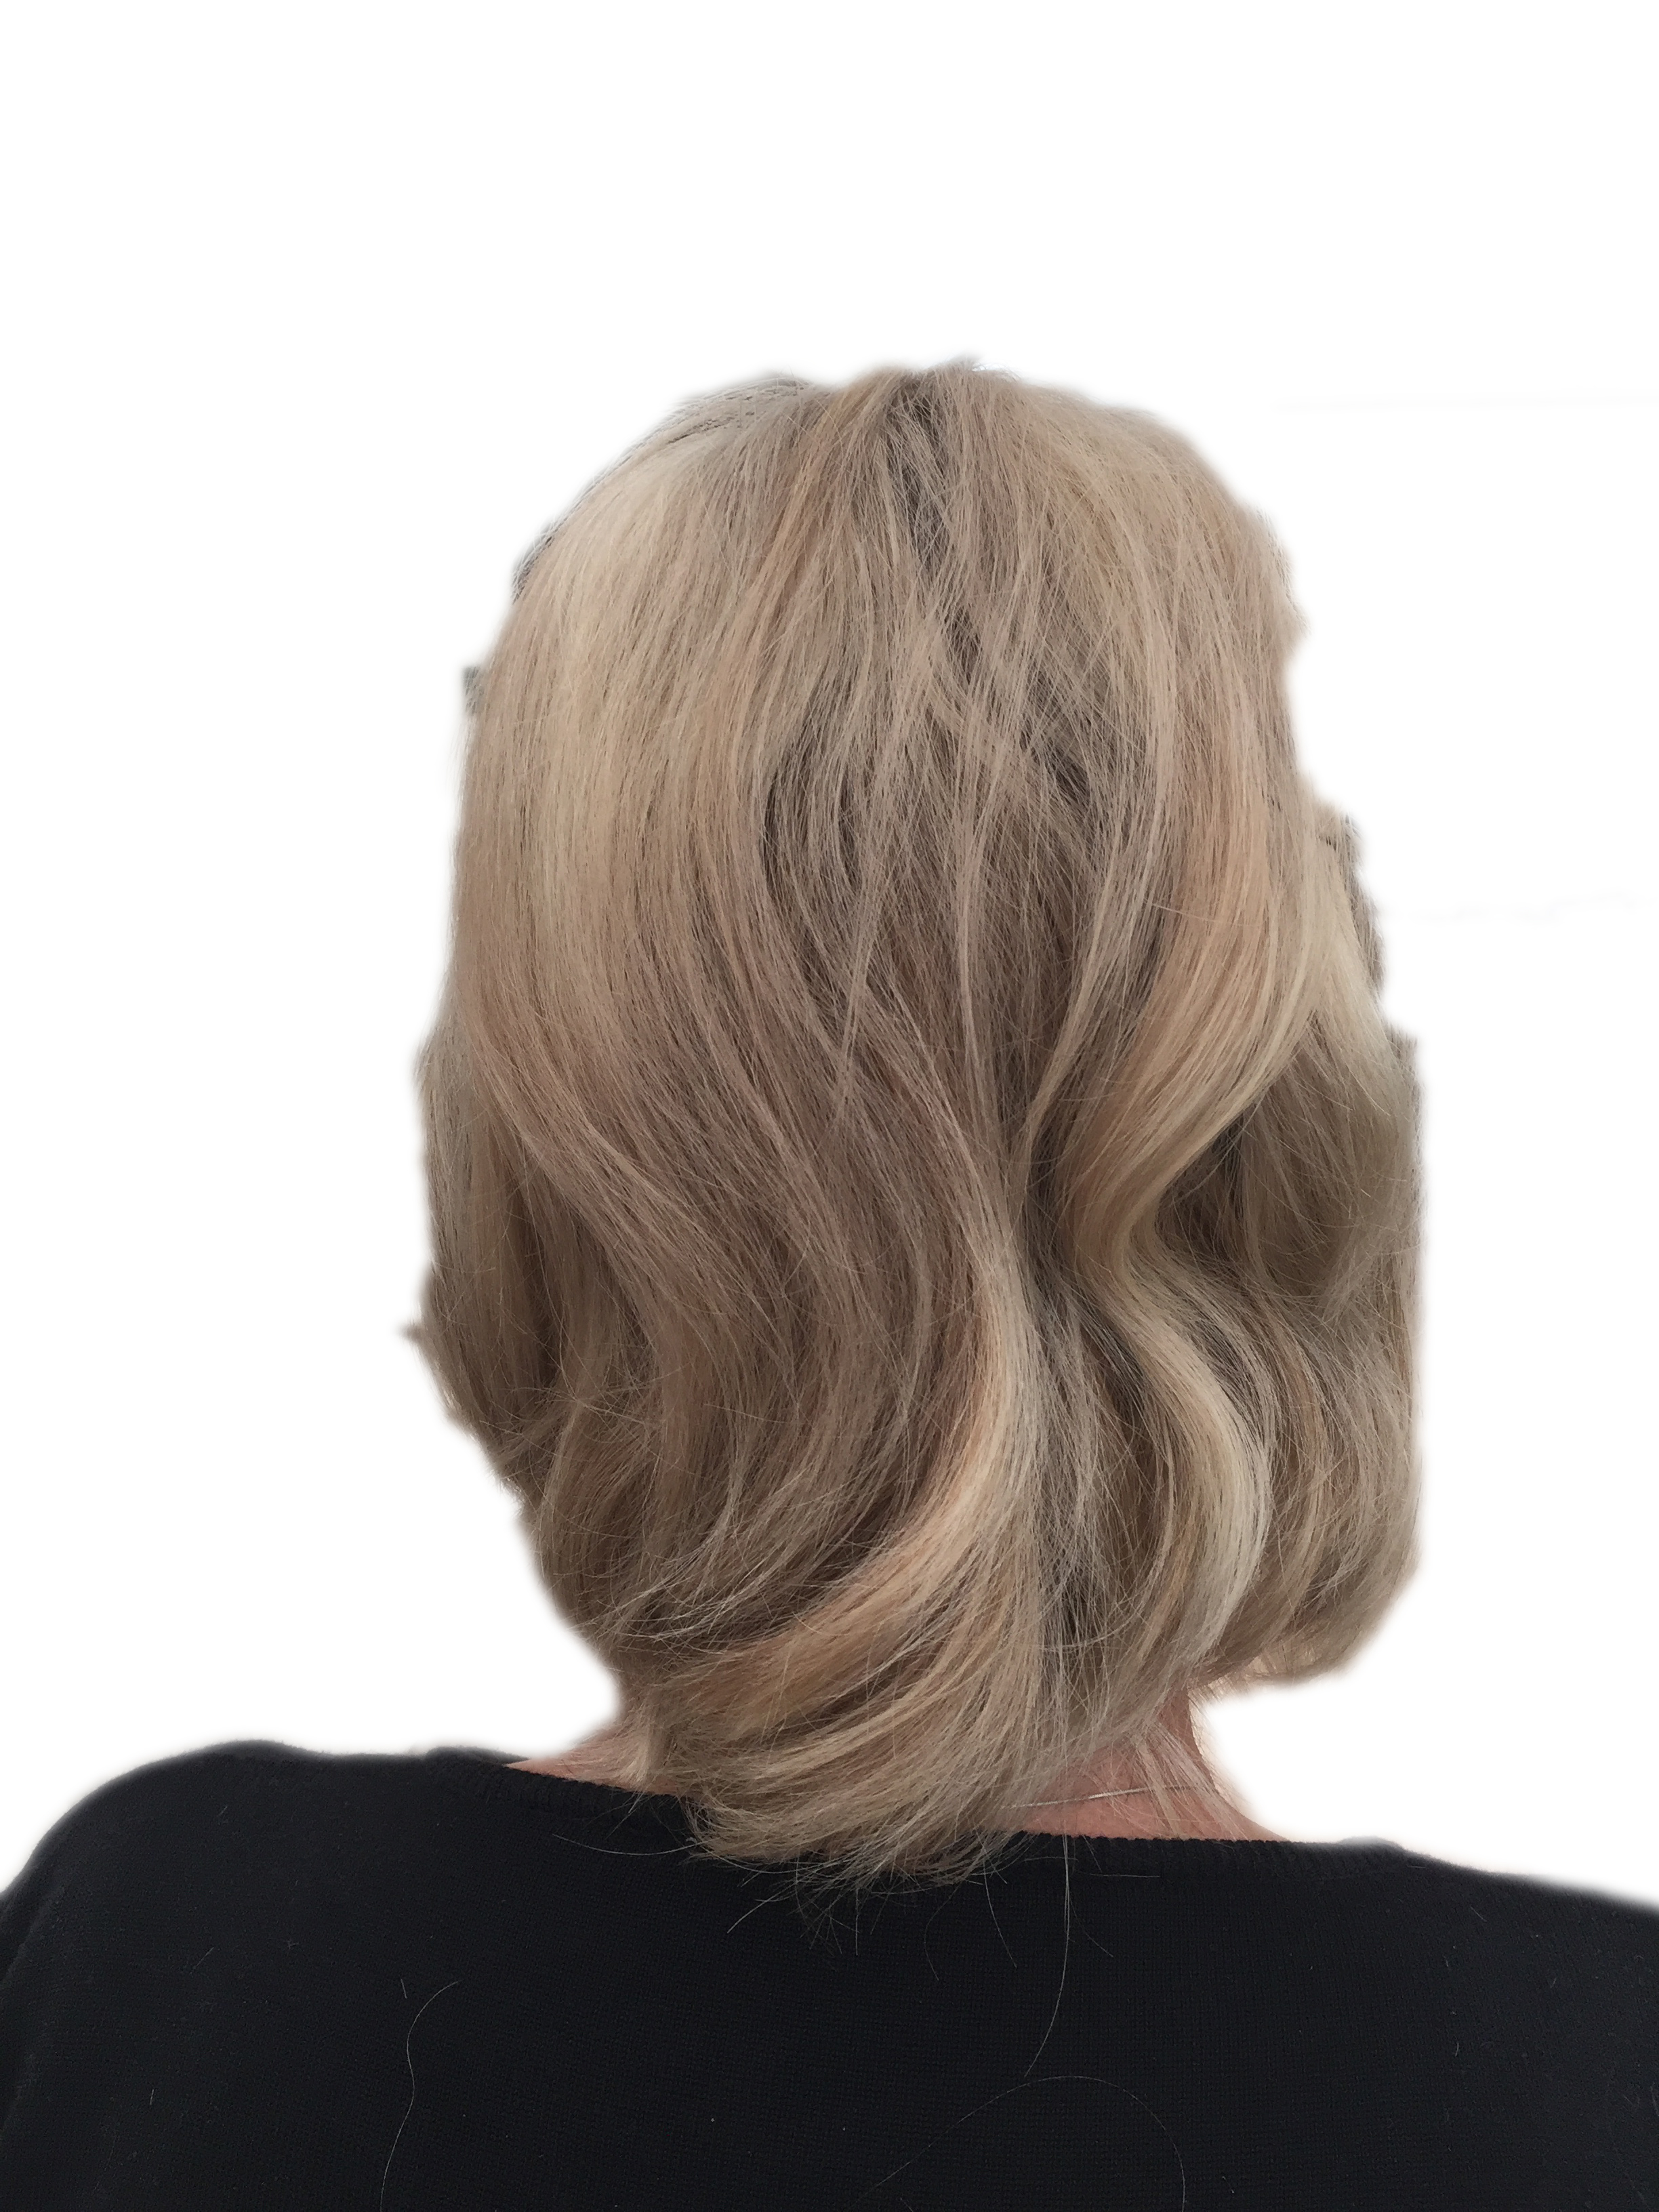 hair topper women thin hair loss